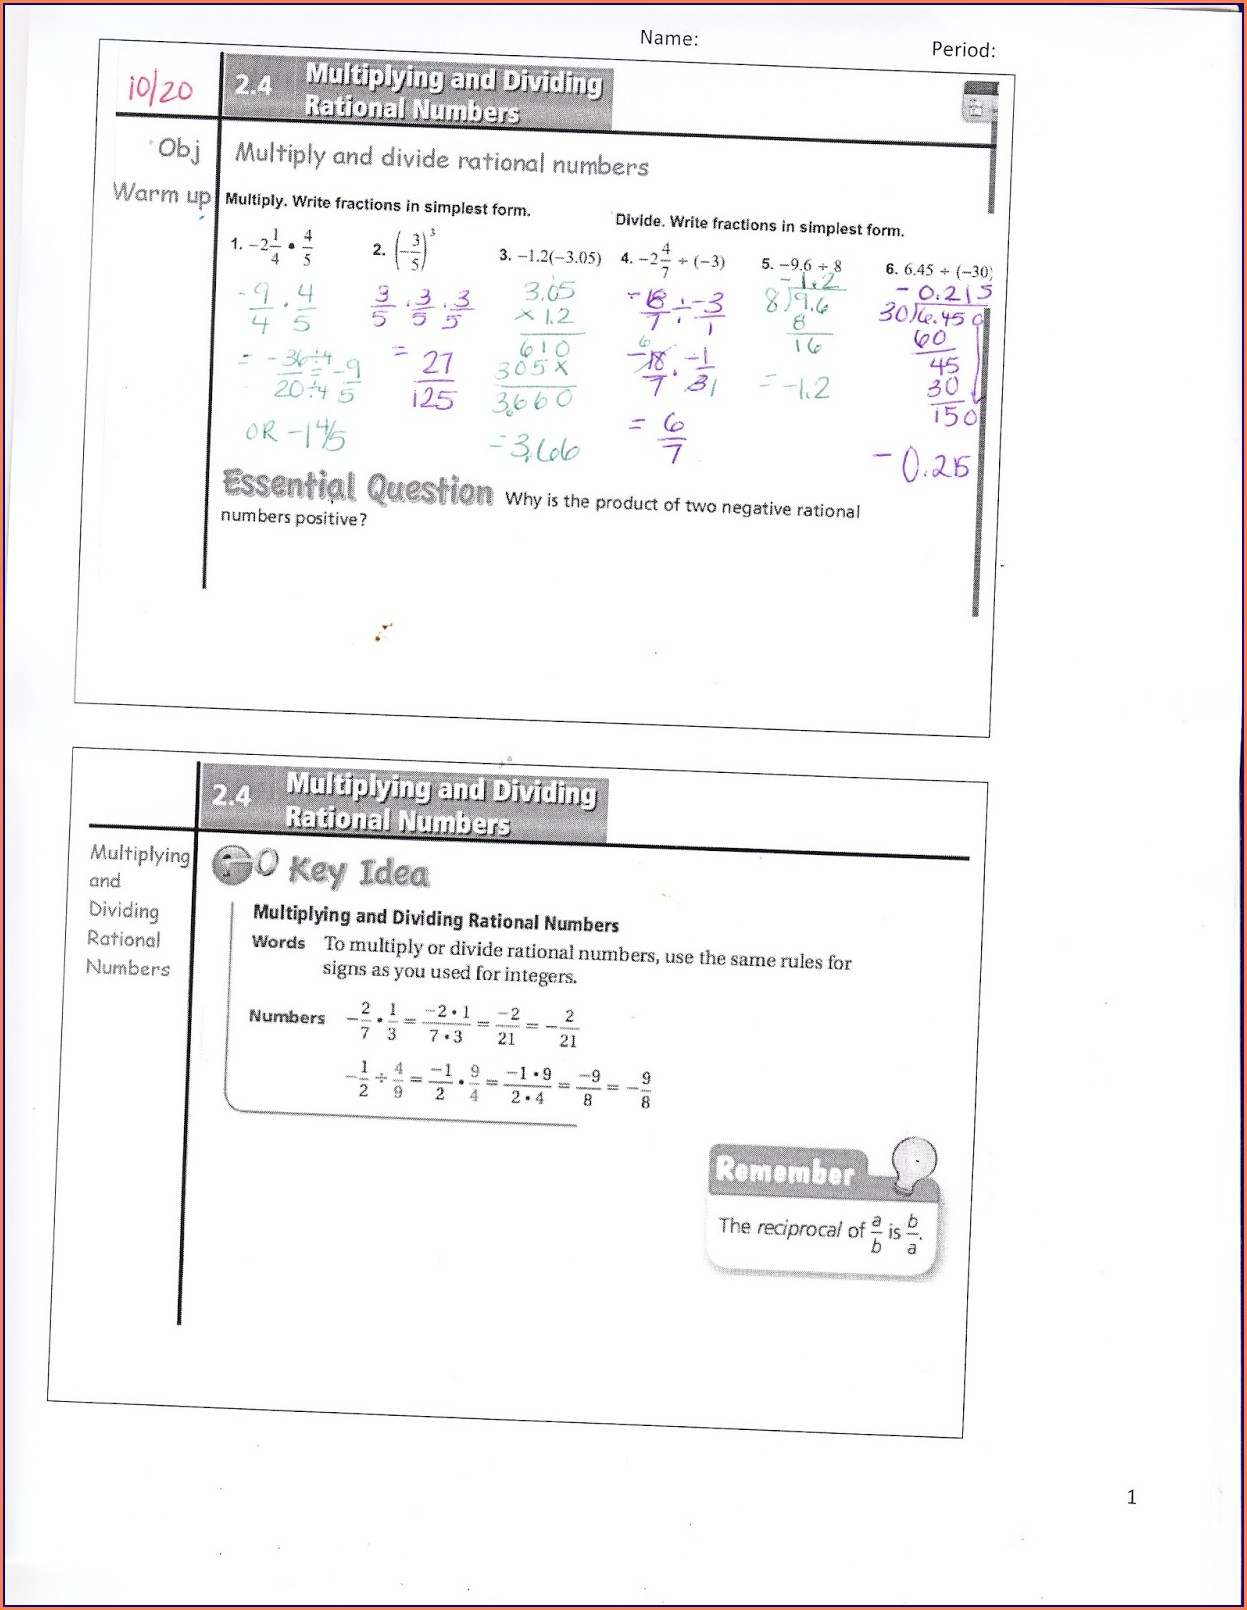 Worksheet On Word Problems On Rational Numbers